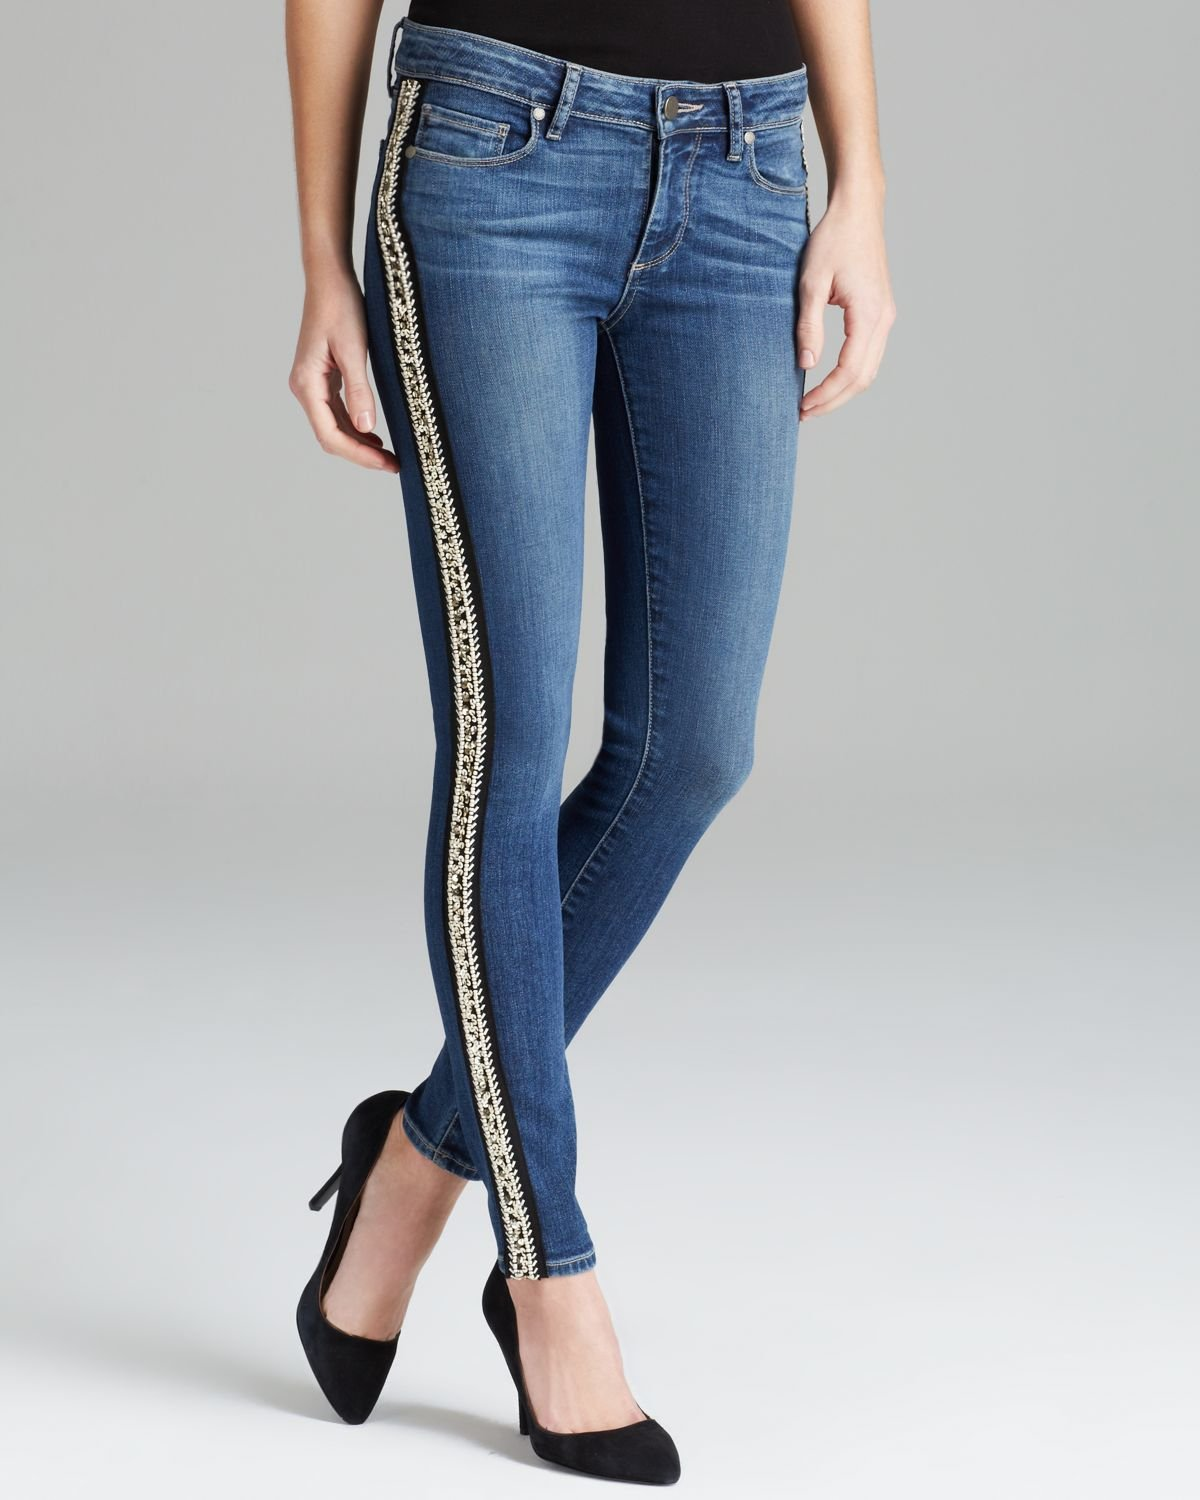 Paige denim jeans verdugo ankle skinny in evie